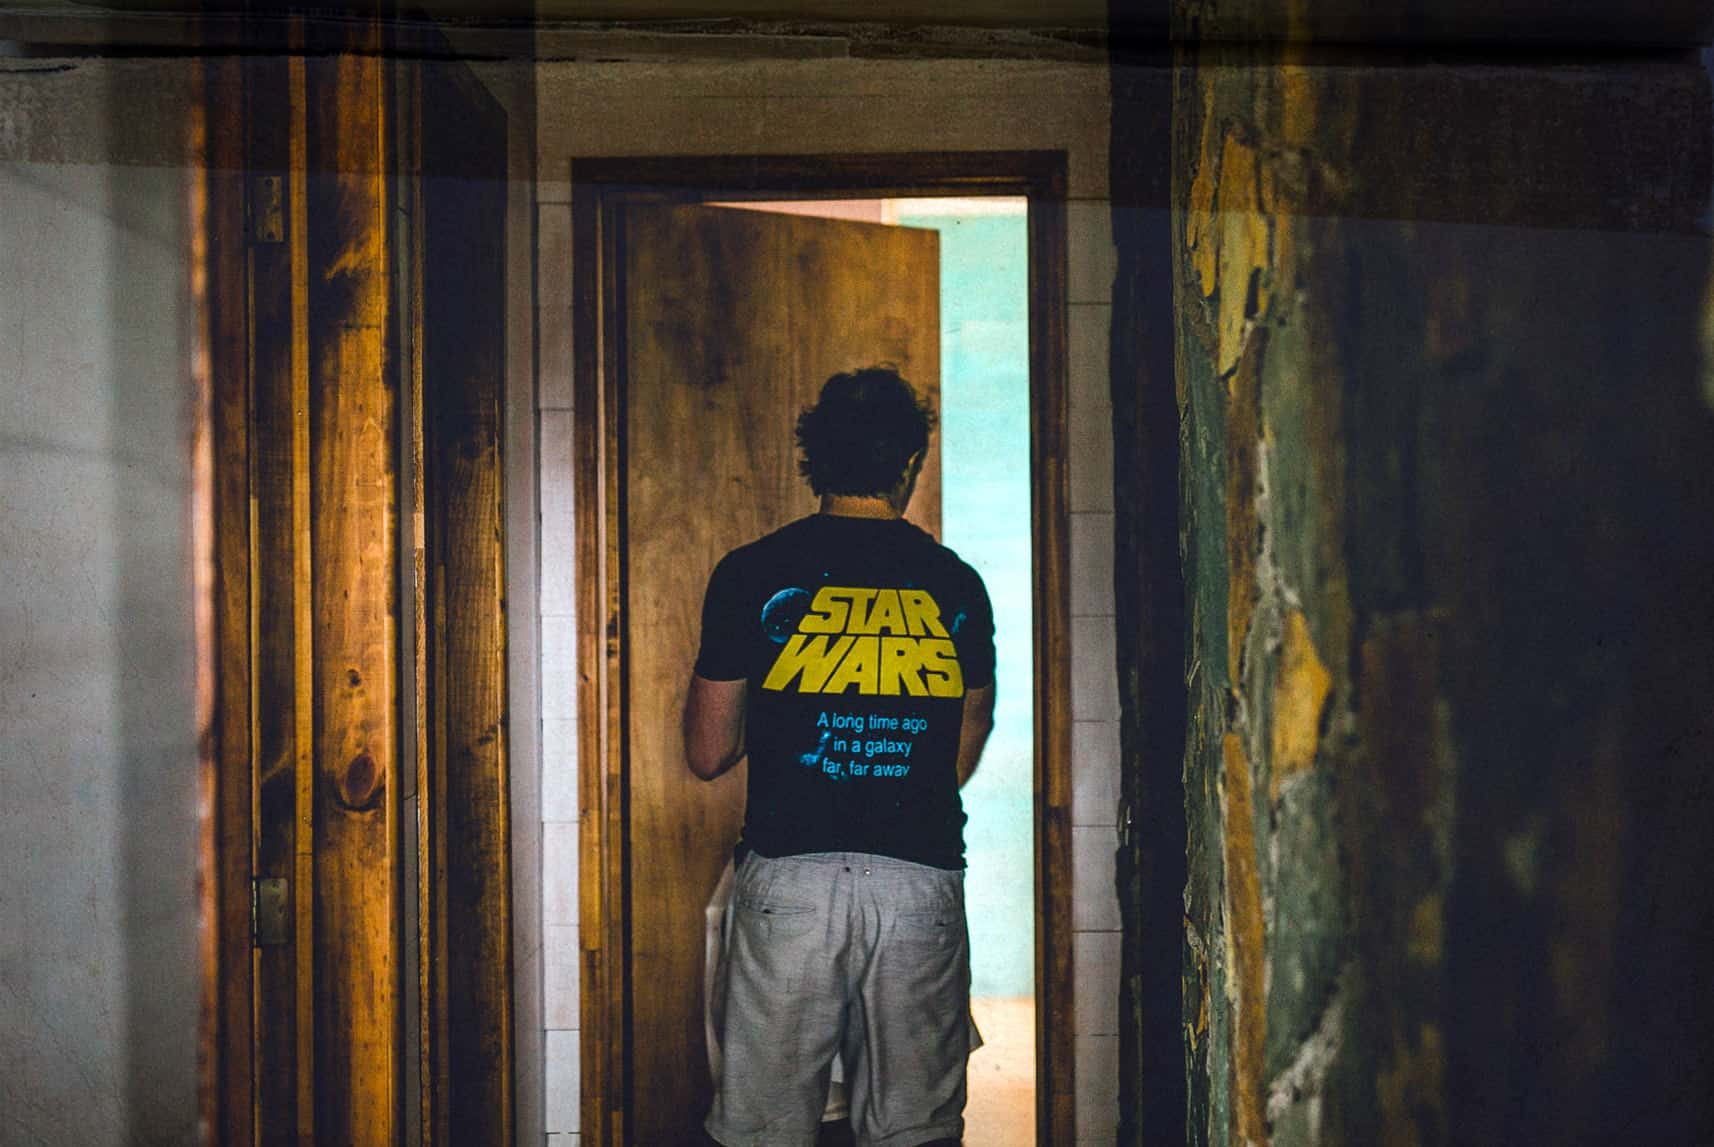 a groom with star wars t shirt walked in his room